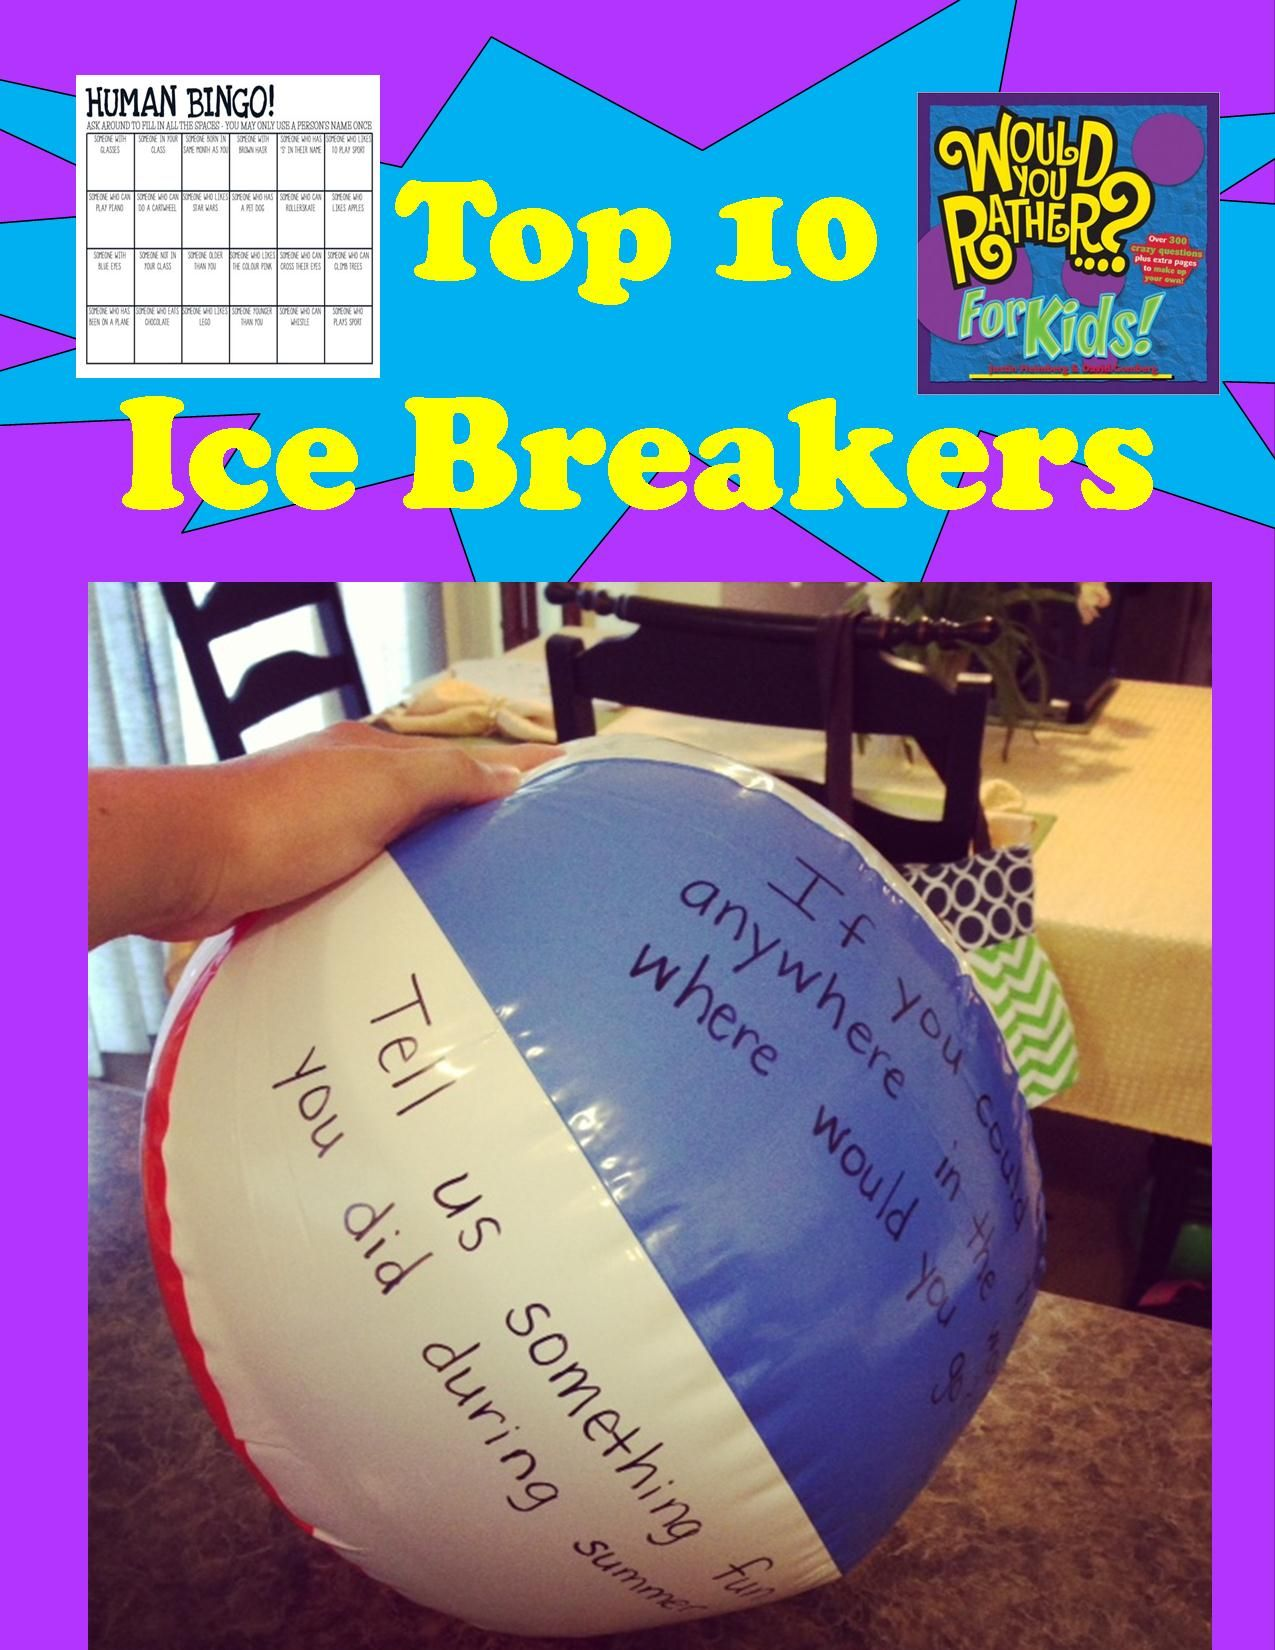 breakers ice meeting short Every single man on the prowl needs to know 10 easy icebreakers when meeting women but these ice breakers can be used for just about any break the ice with a.